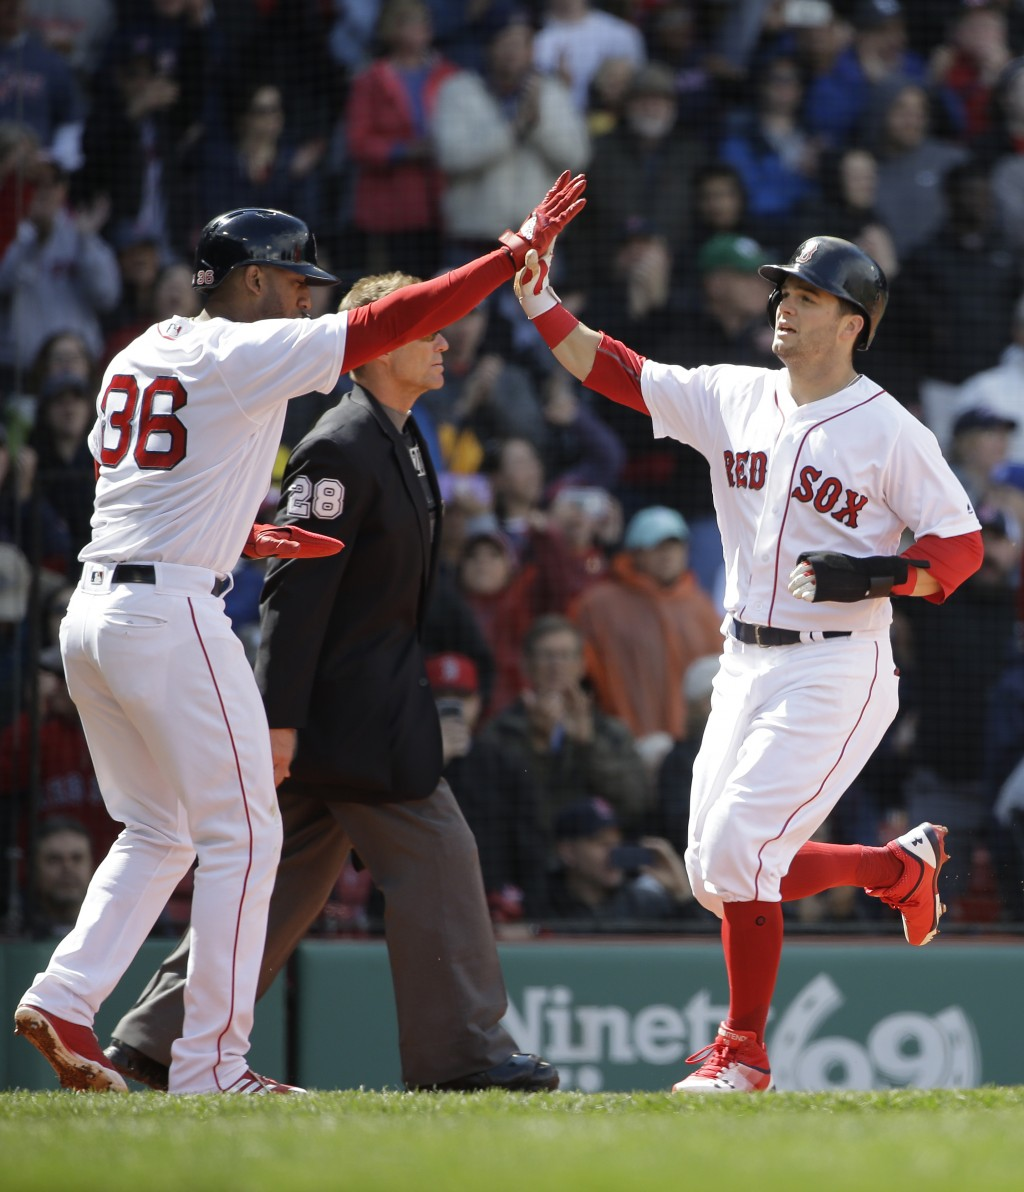 Boston Red Sox's Eduardo Nunez, left, and Andrew Benintendi, right, celebrate at home plate as they score on a single hit by Boston Red Sox right fiel...